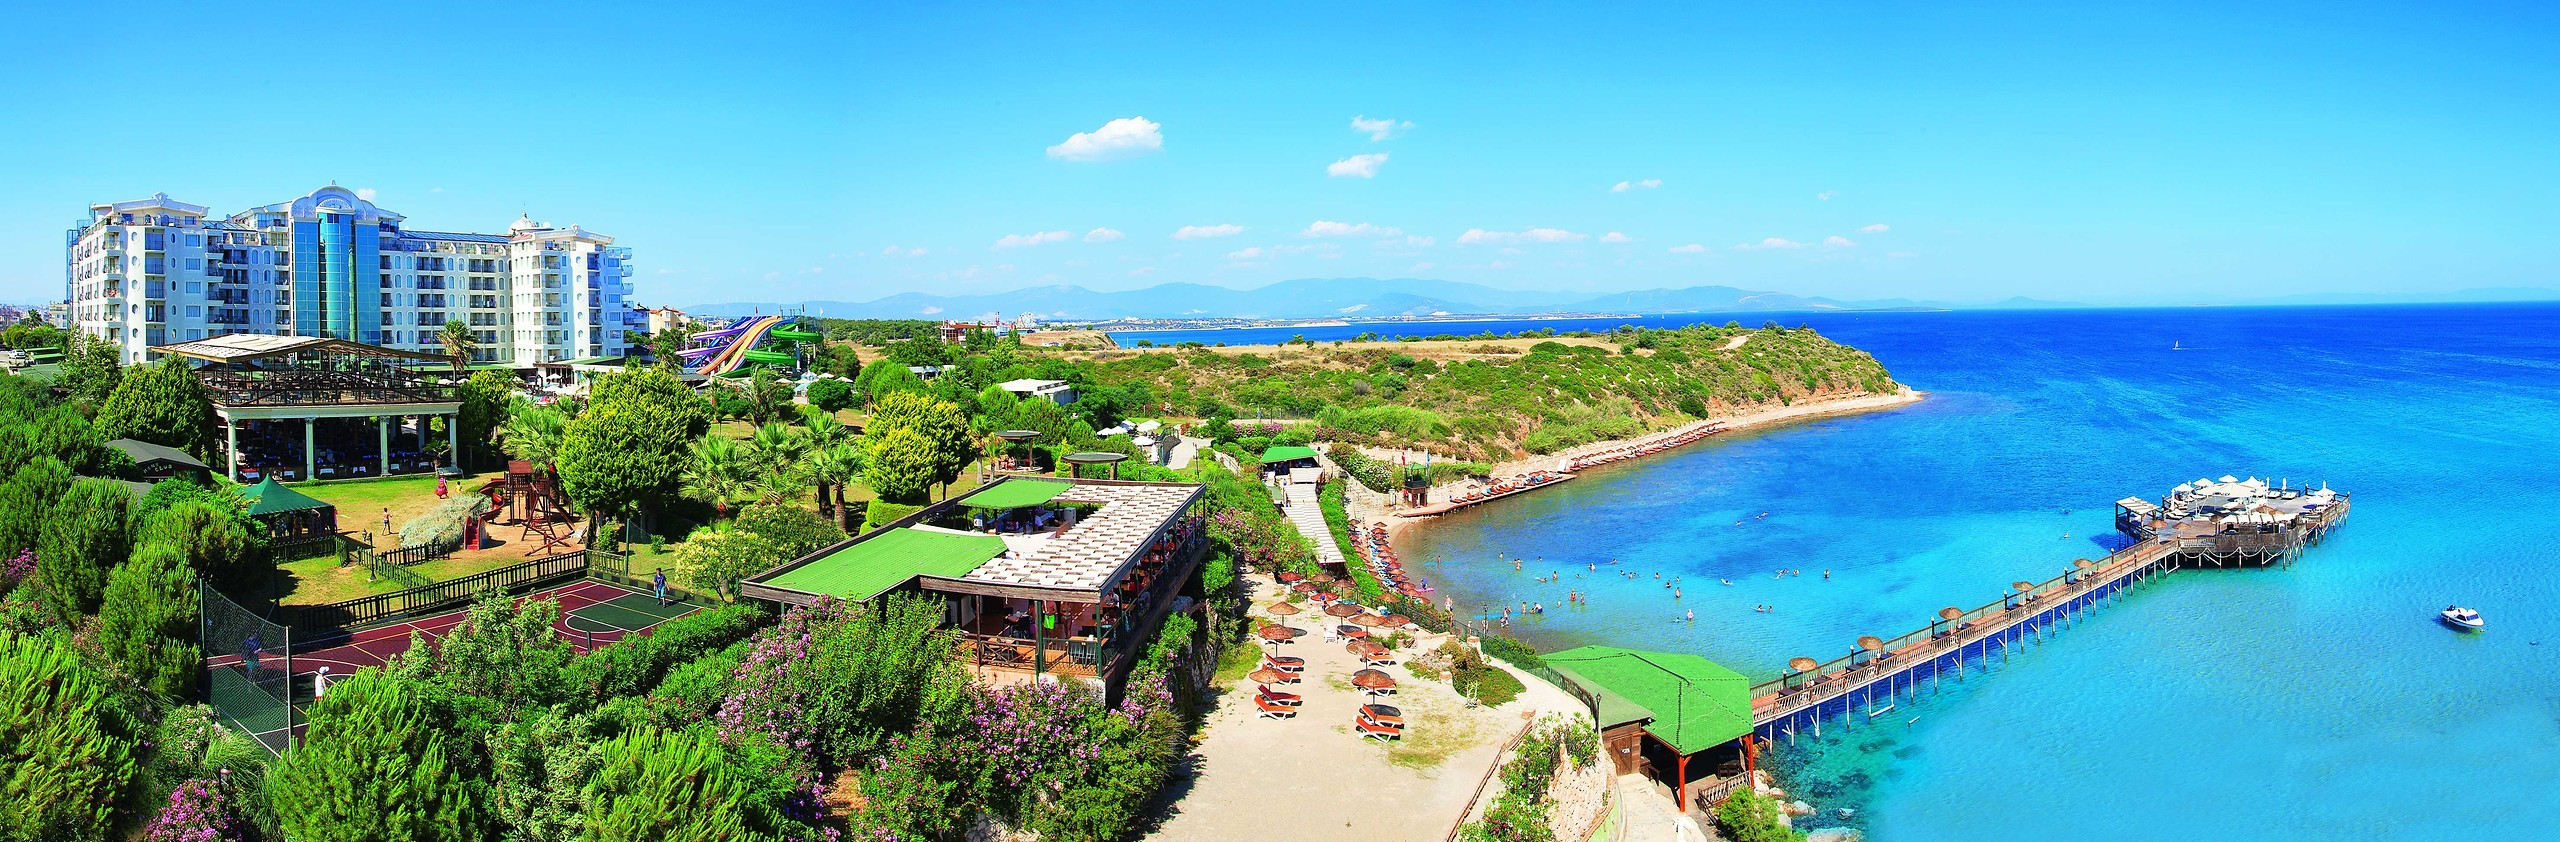 Didim Beach Resort&SPA - панорама